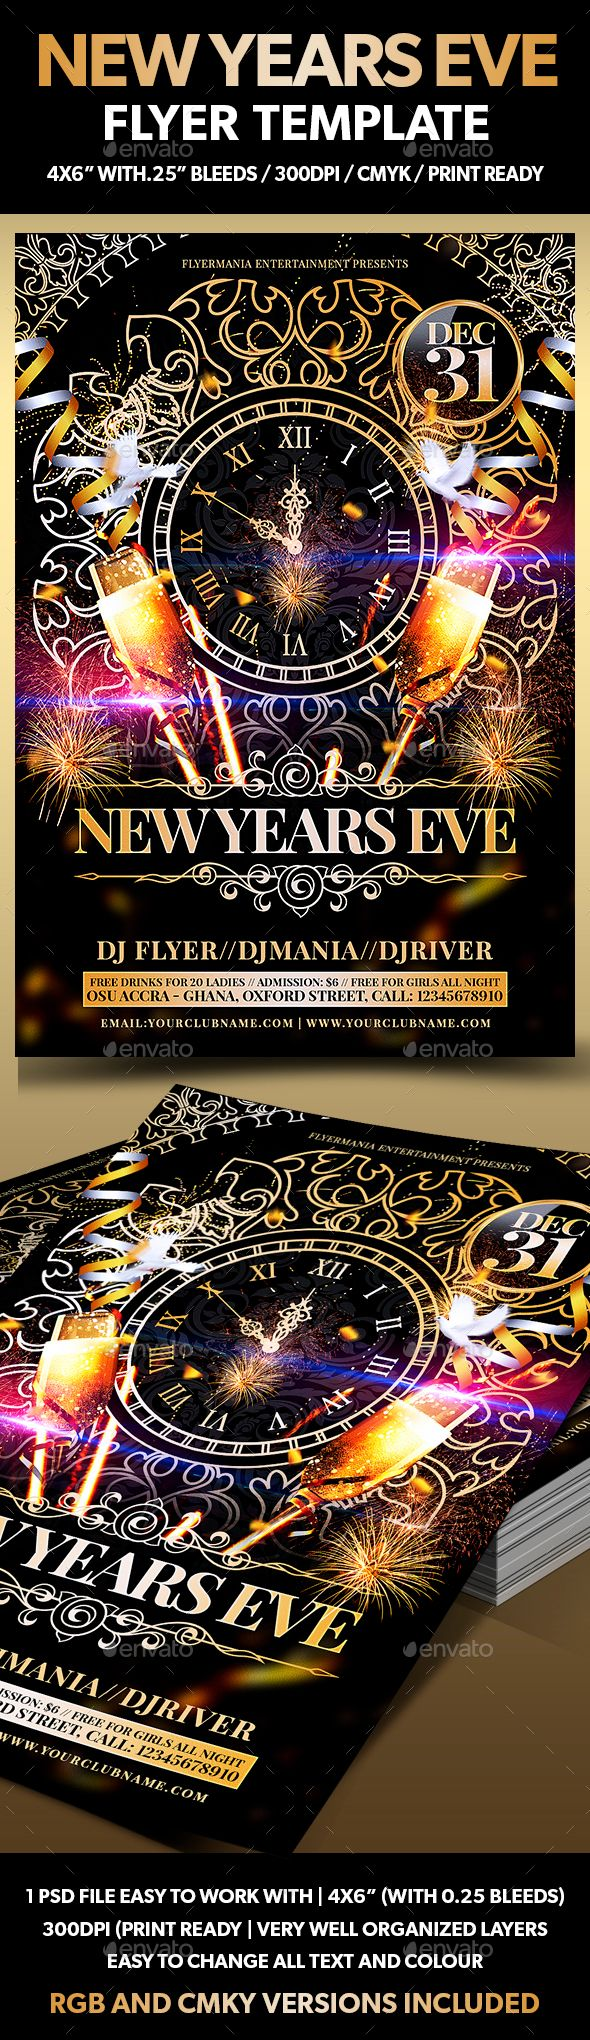 100 best new year party flyer templates images on pinterest party new years eve flyer template saigontimesfo